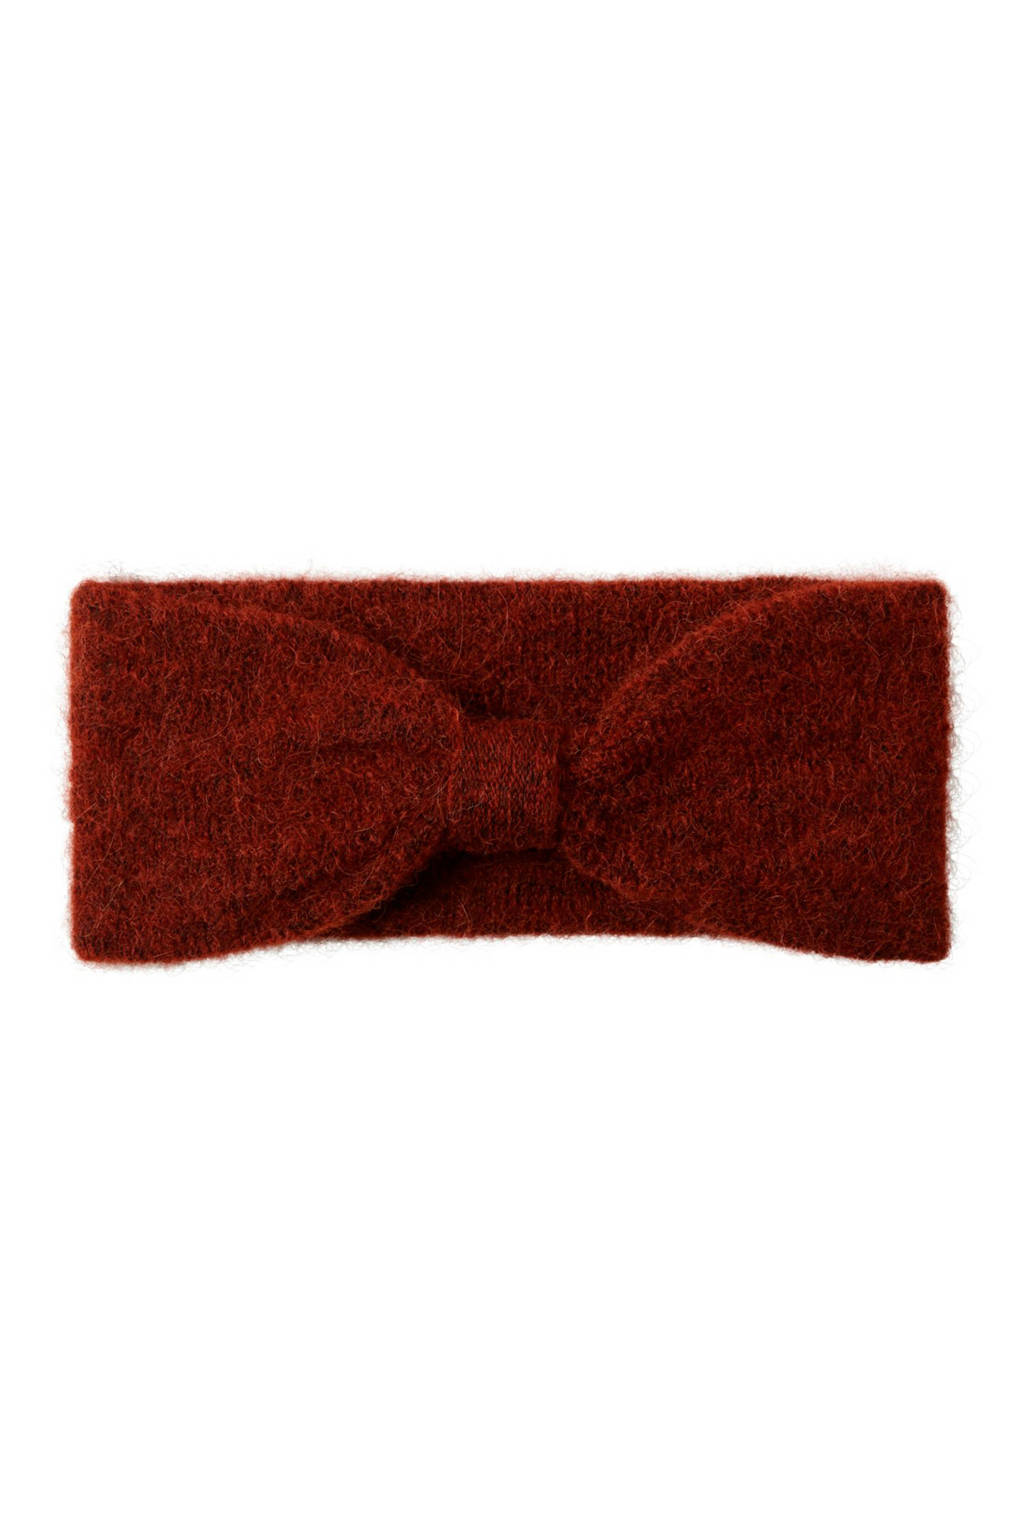 PIECES haarband donkerrood, Rood